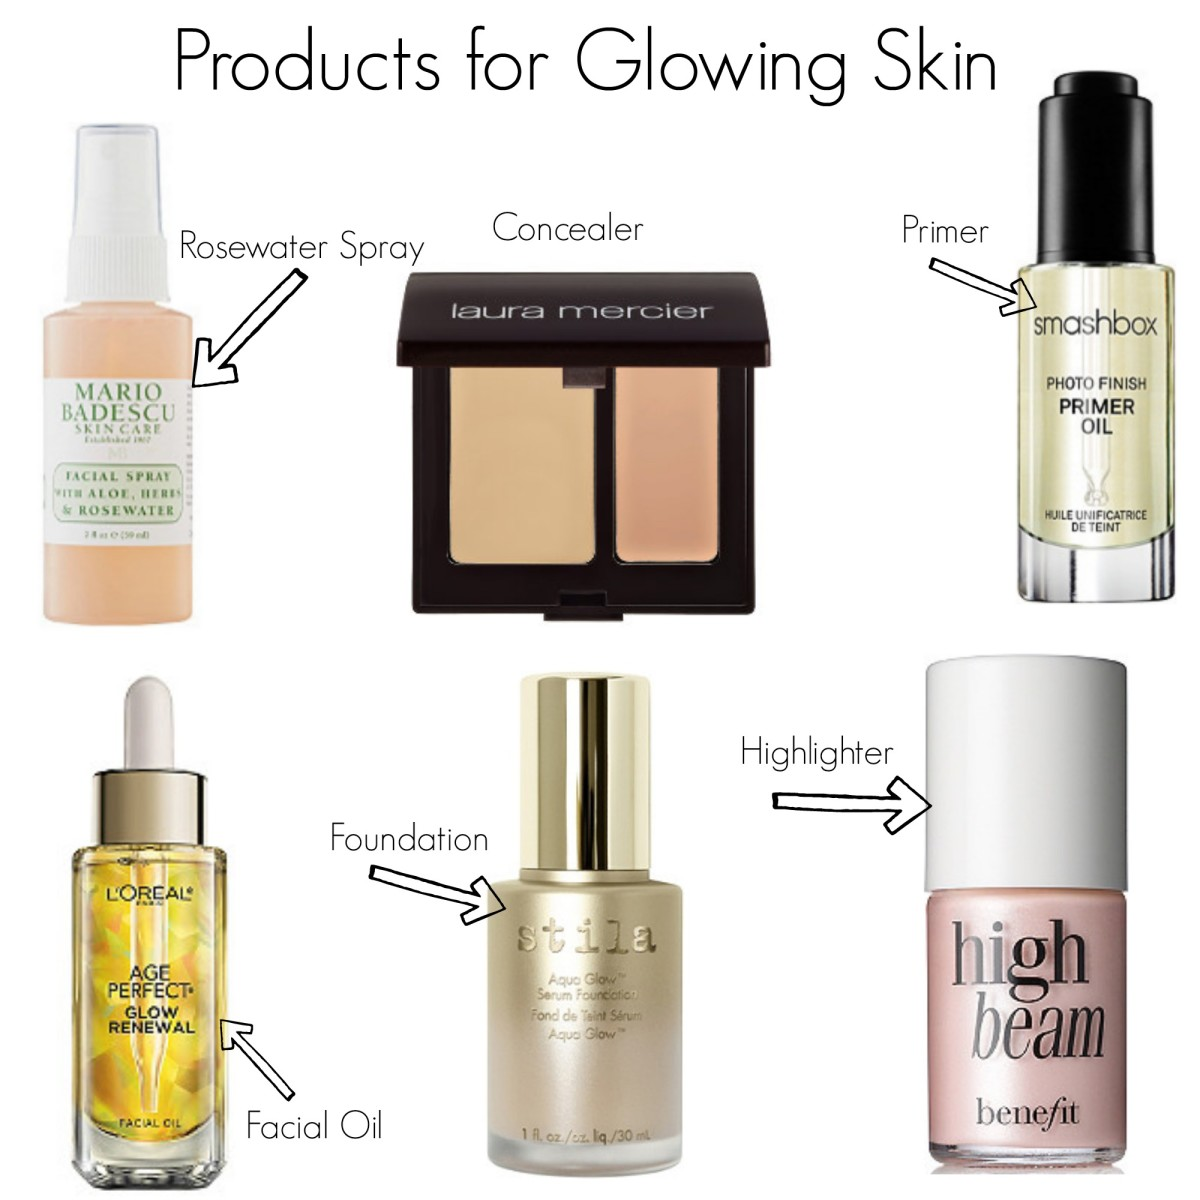 Products for Glowing Skin - Bourbon, Lipstick, and Stilettos